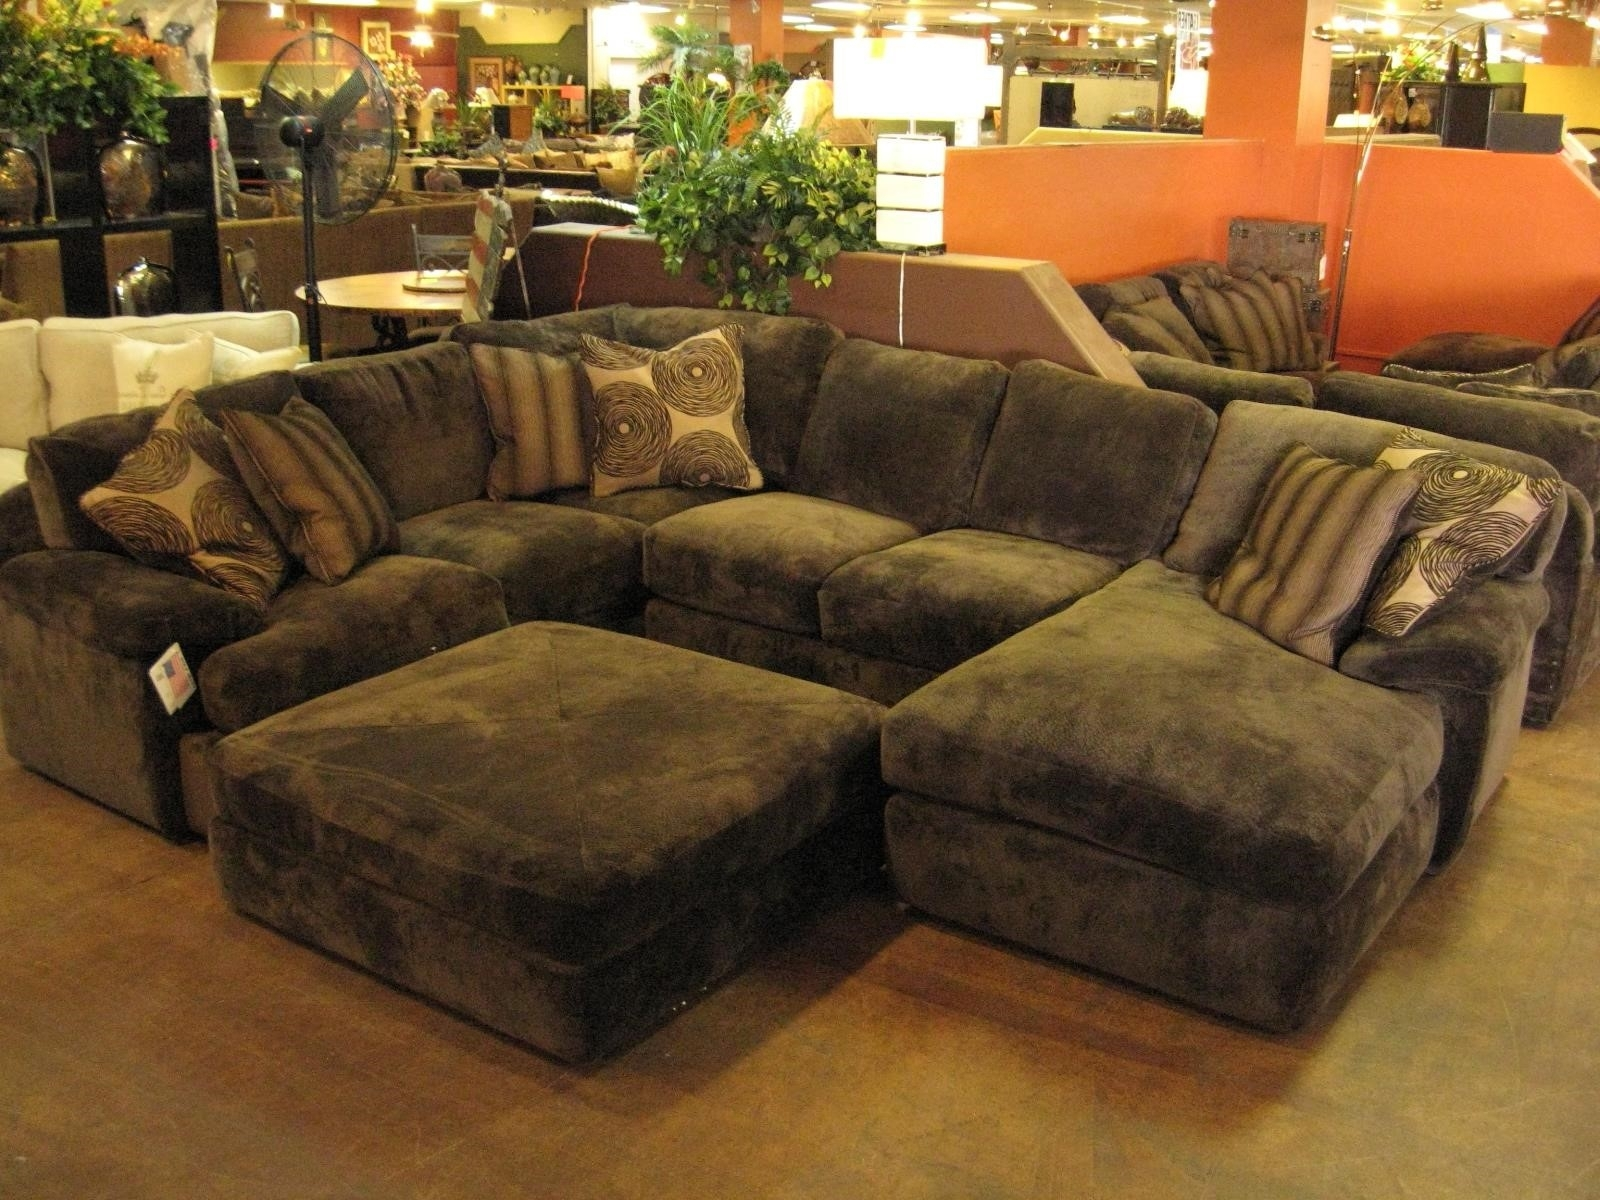 Large Sectional Sofa With Ottoman – Visionexchange (View 8 of 15)